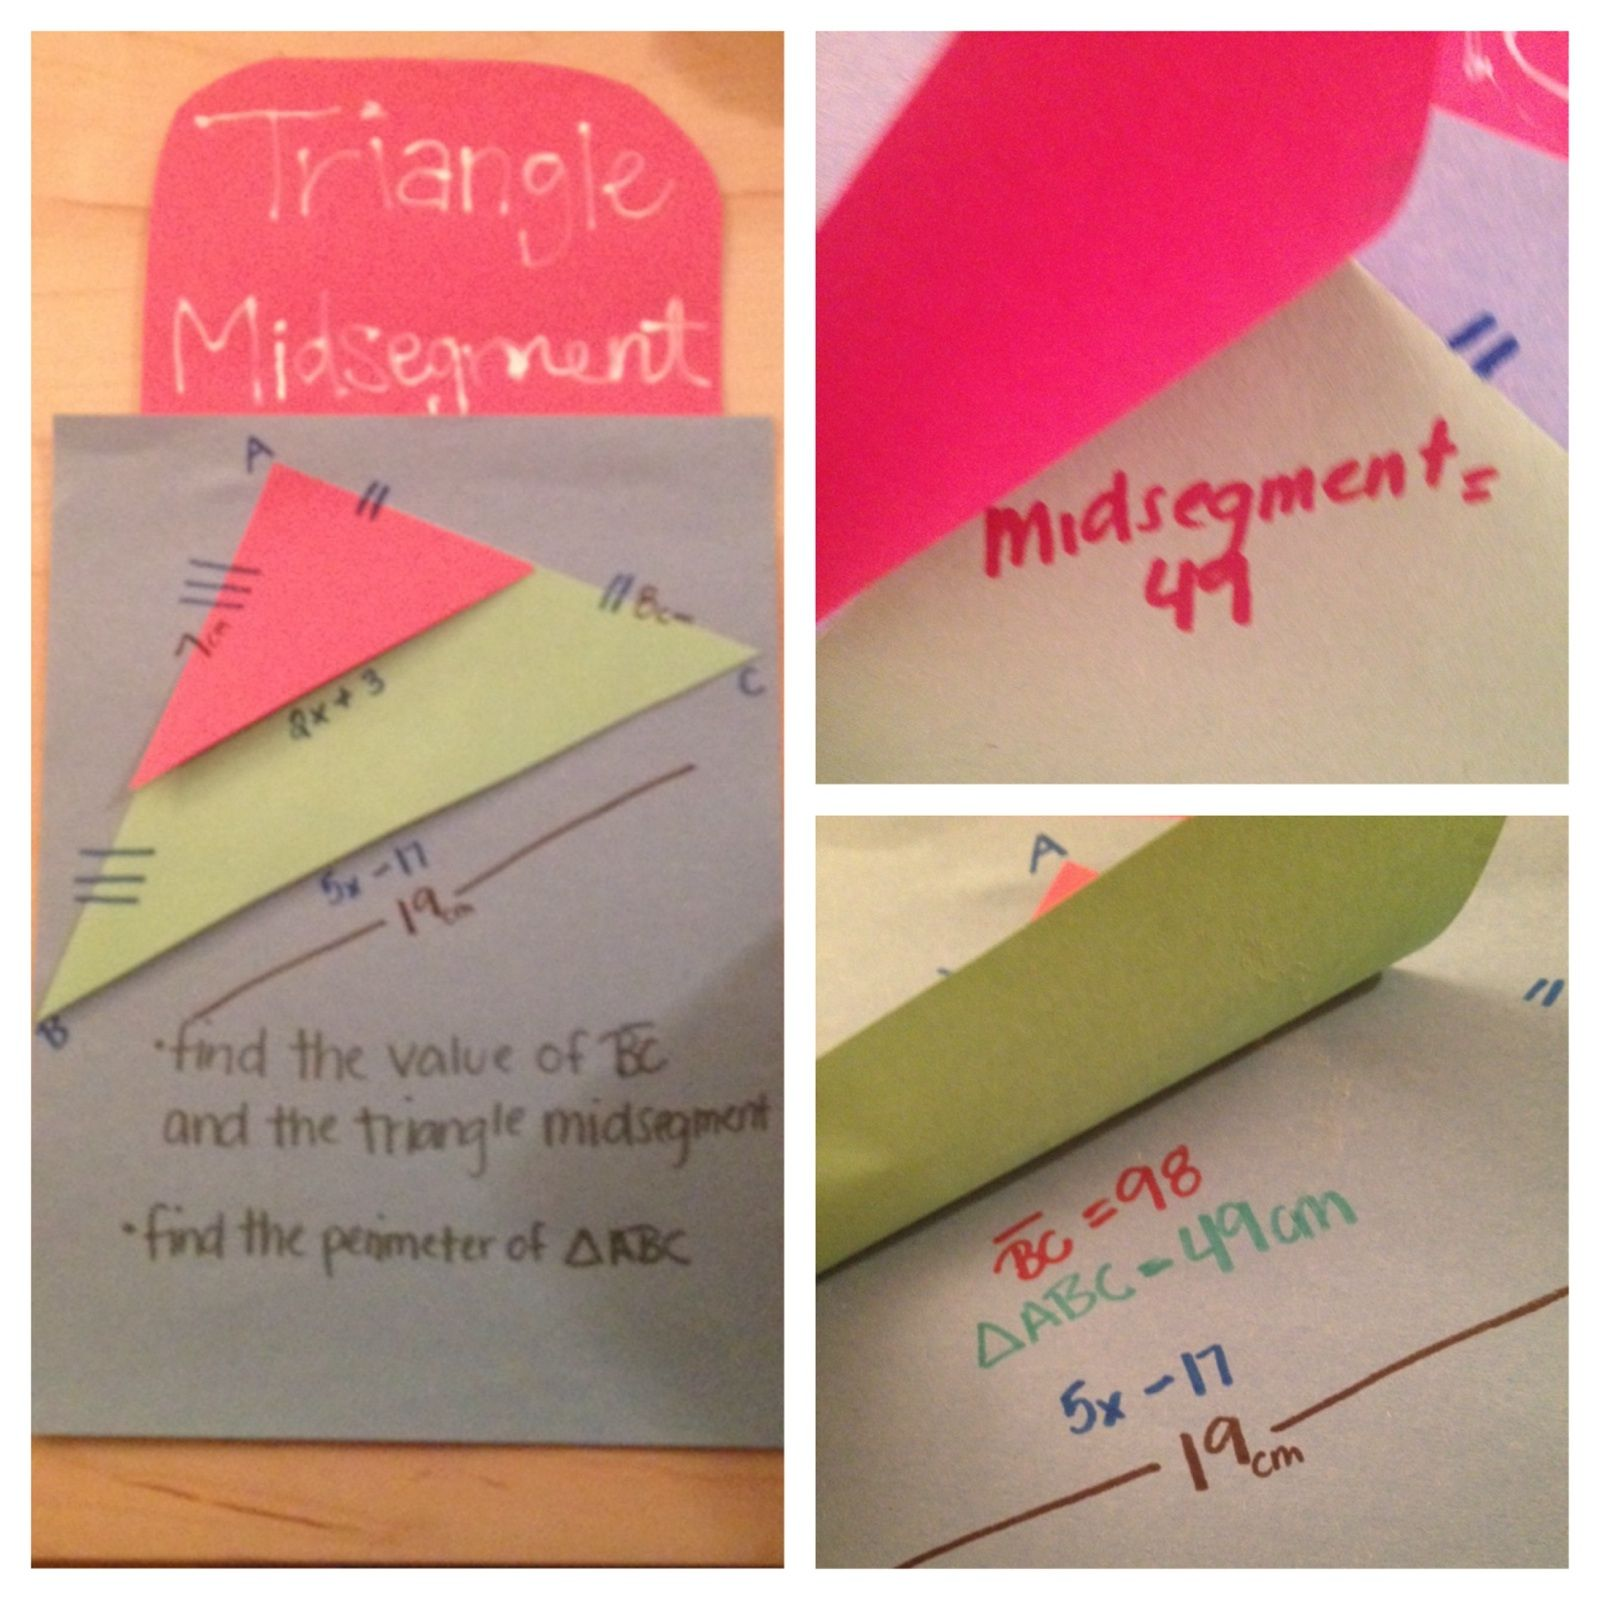 Triangle Midsegment Pop Up Find The Midsegment Length Length Of Bc And The Perimeter Then Fold Up To Ch Teaching Geometry Math Geometry Guided Math Lessons